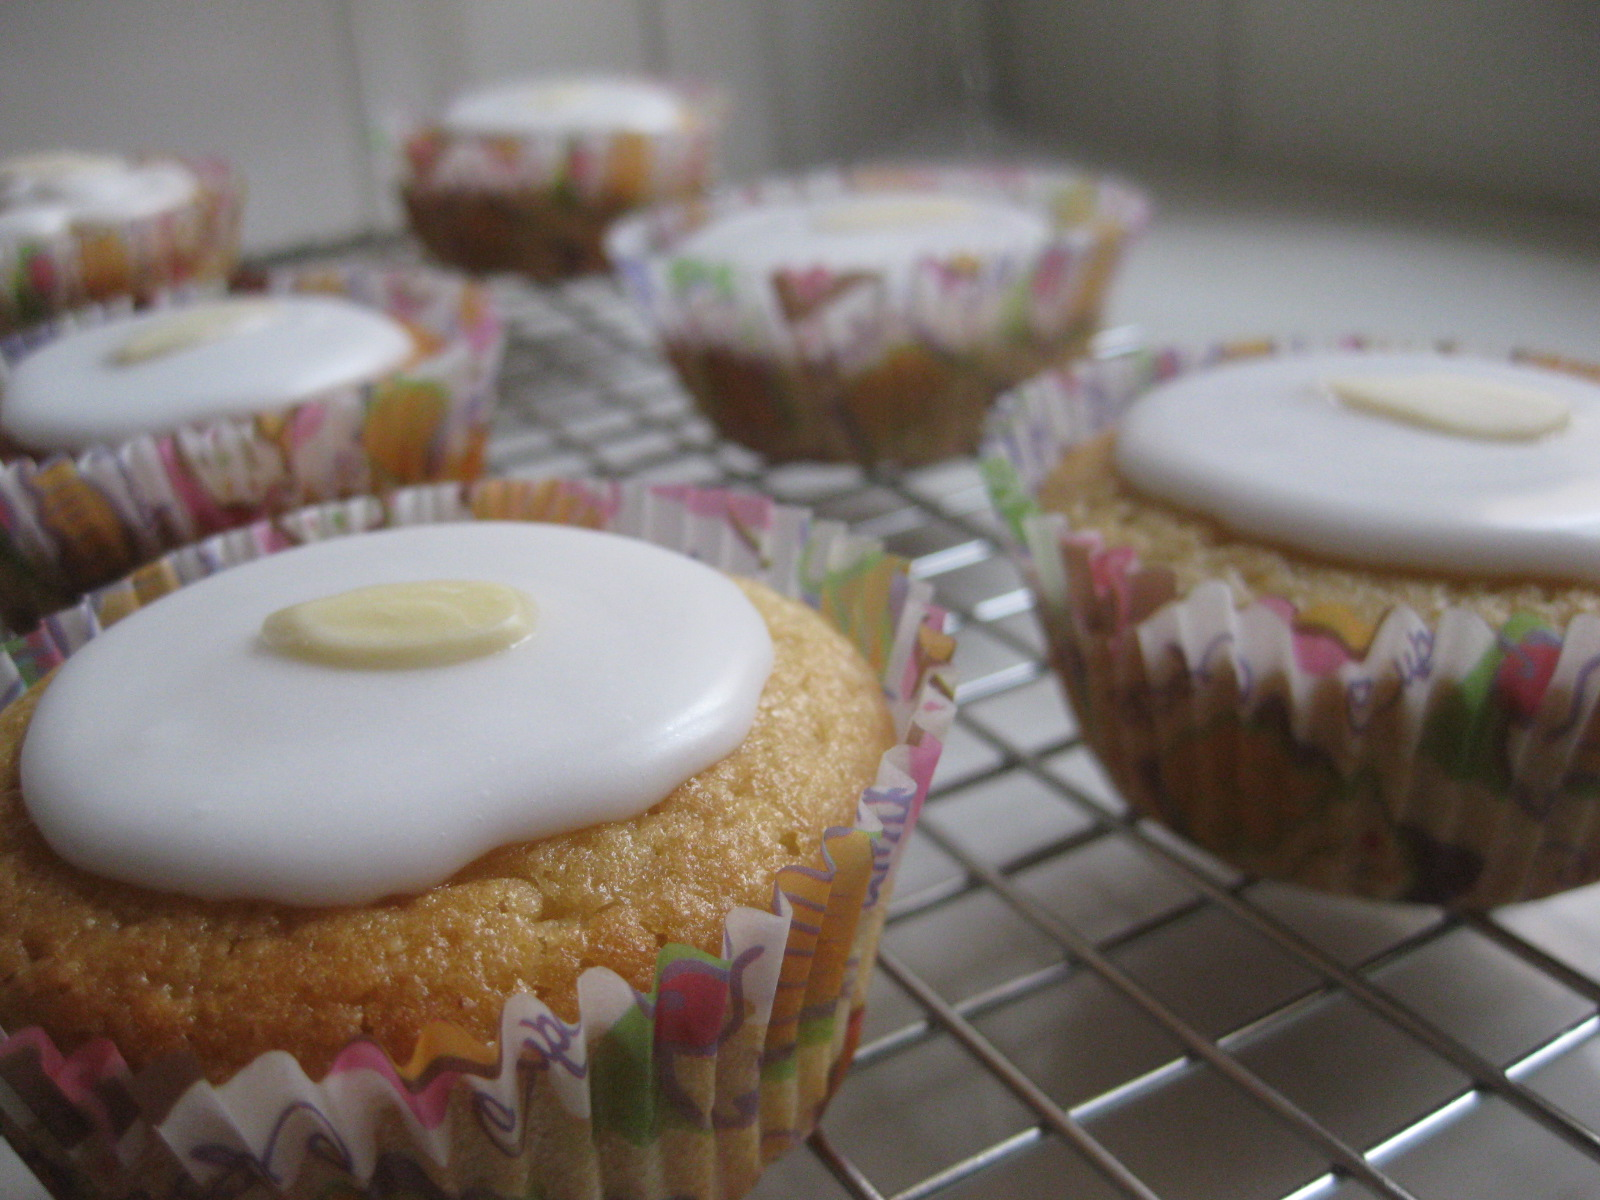 vegan cupcakes take over the world  75 dairy free recipes